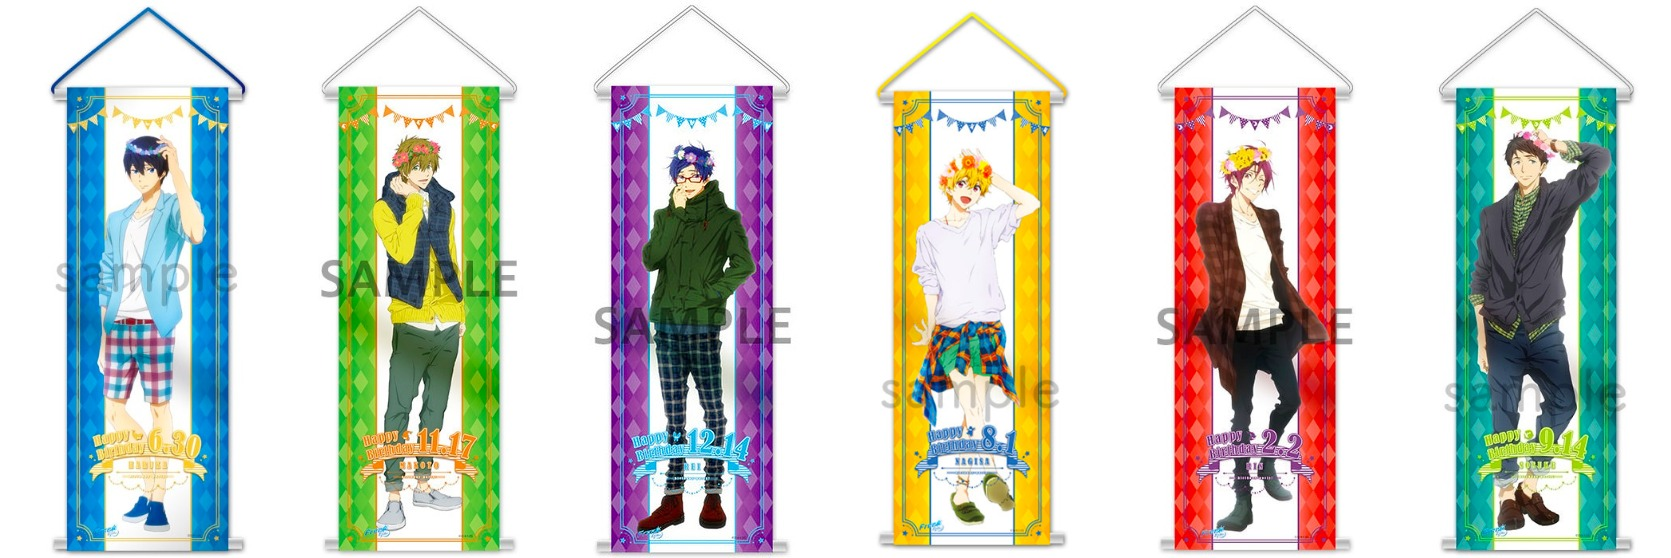 Free! tapestry